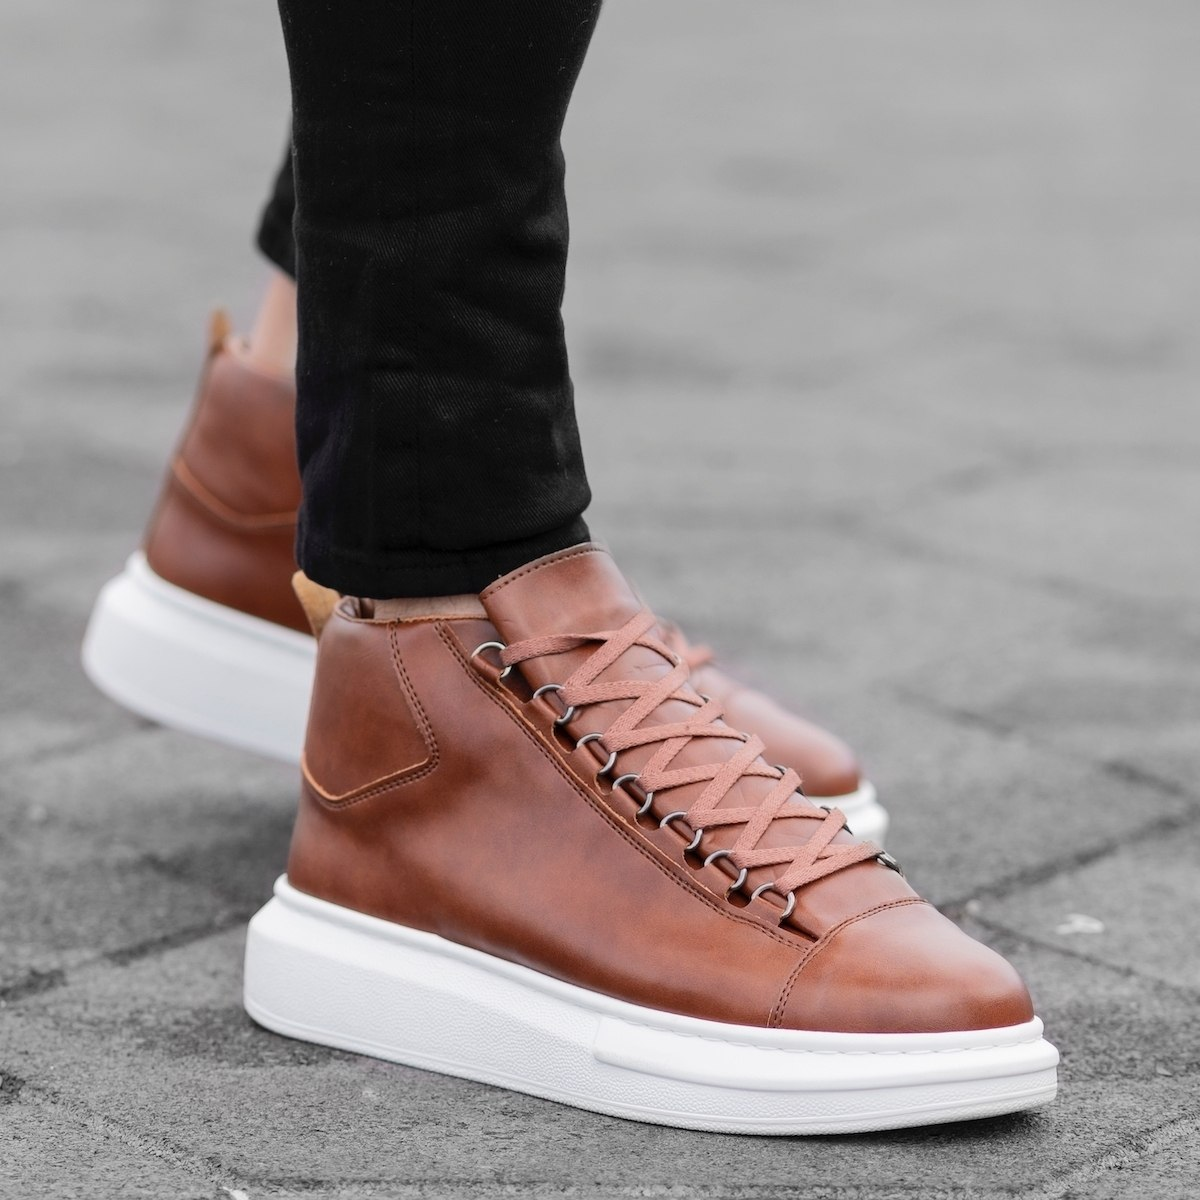 Hype Sole Mox High Top Sneakers in Taupe